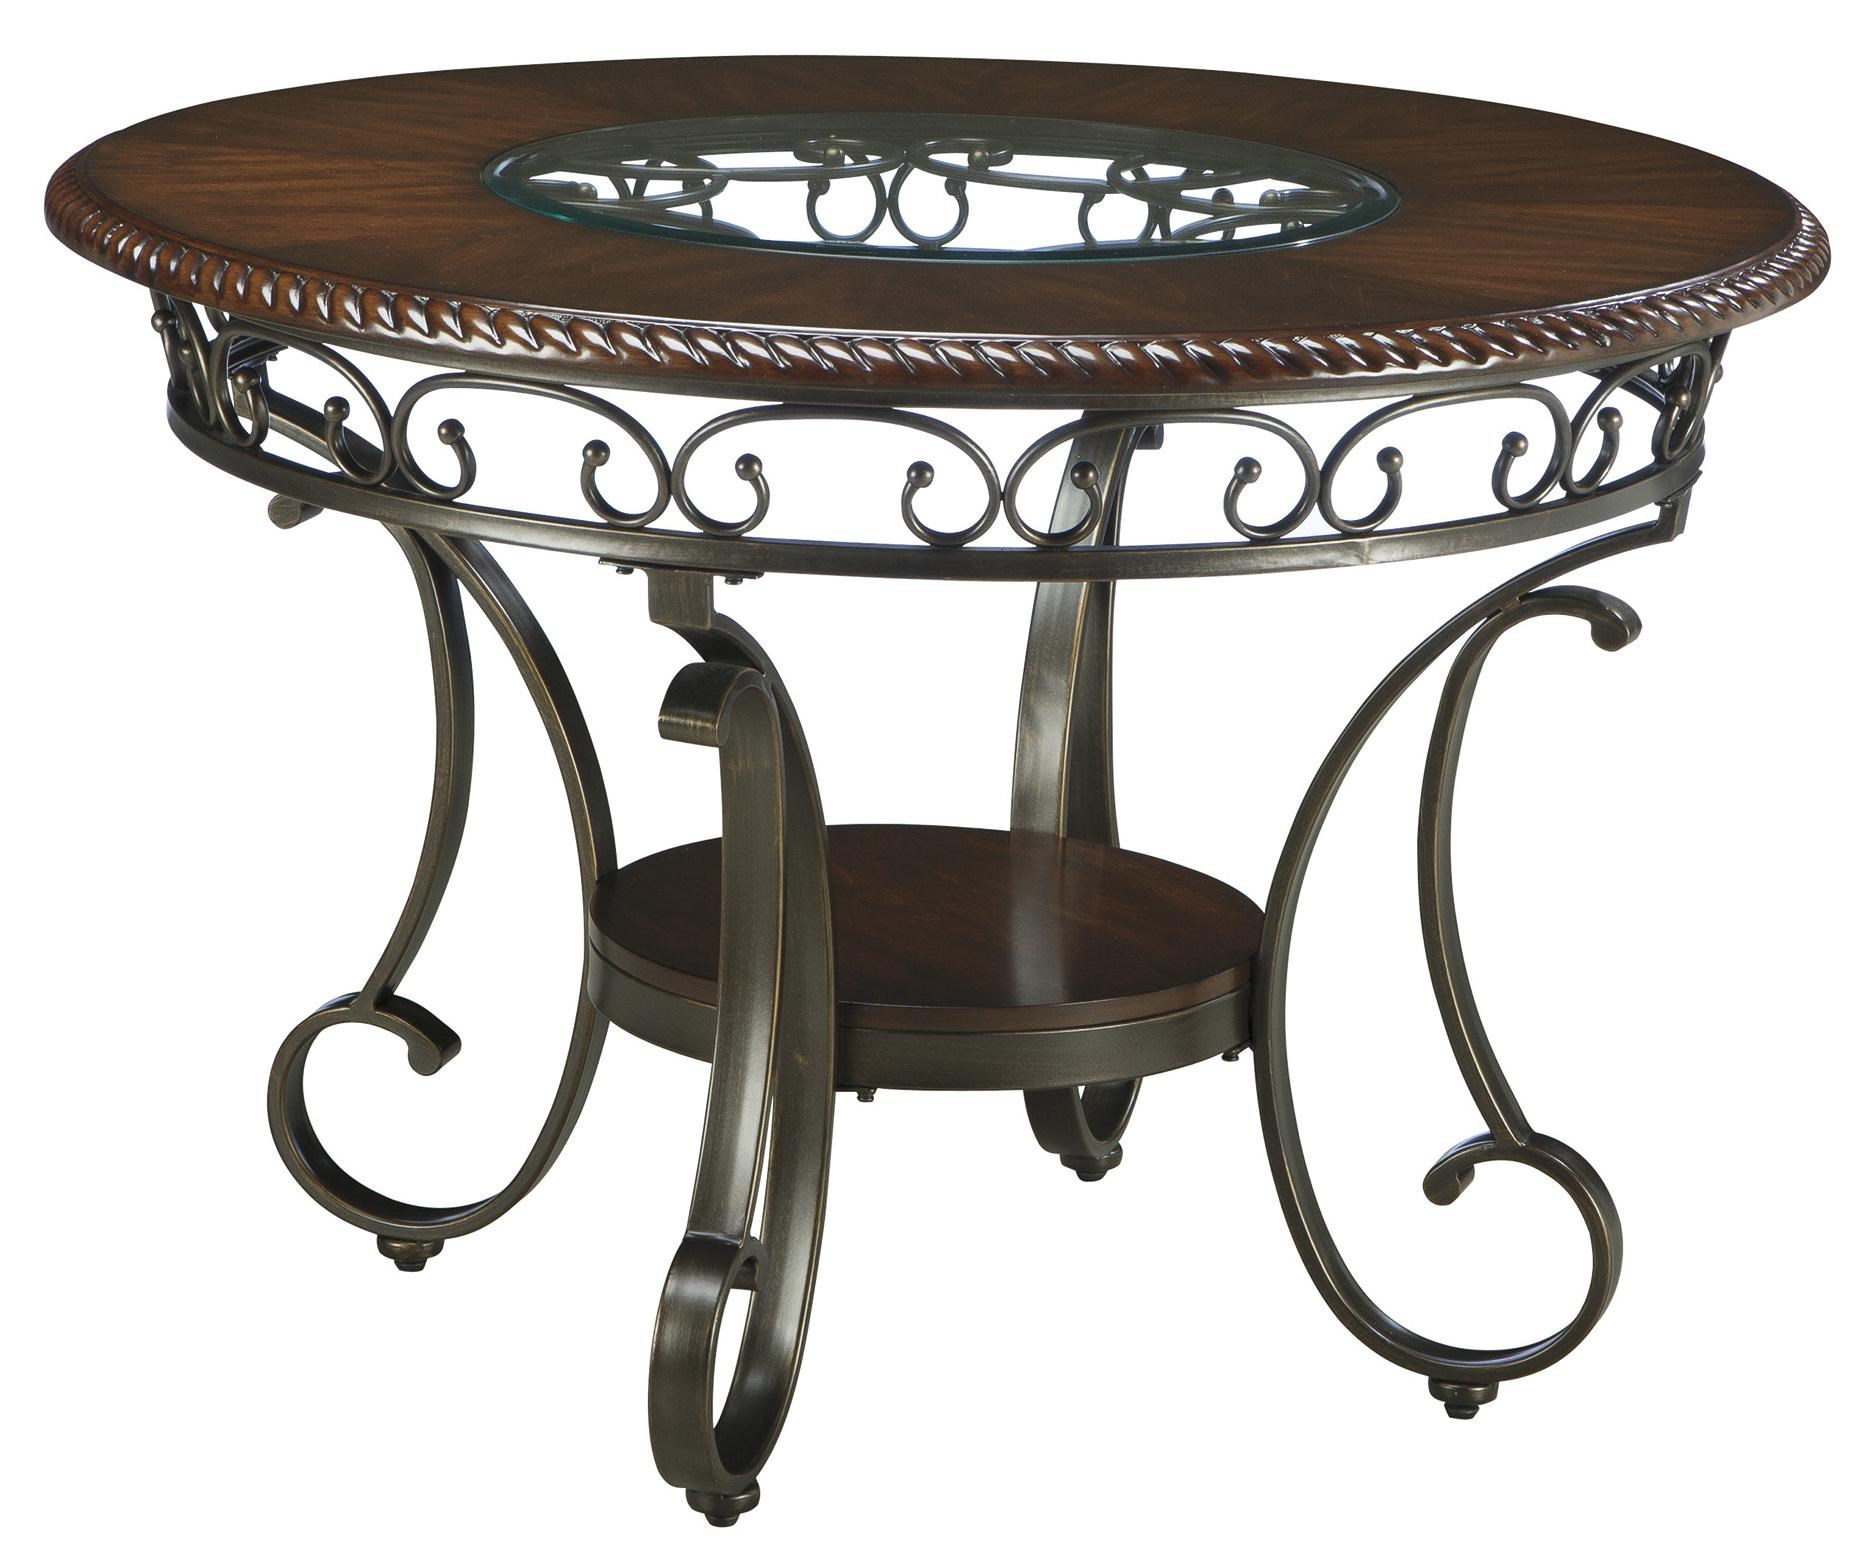 Signature Design by Ashley Glambrey Round Dining Room